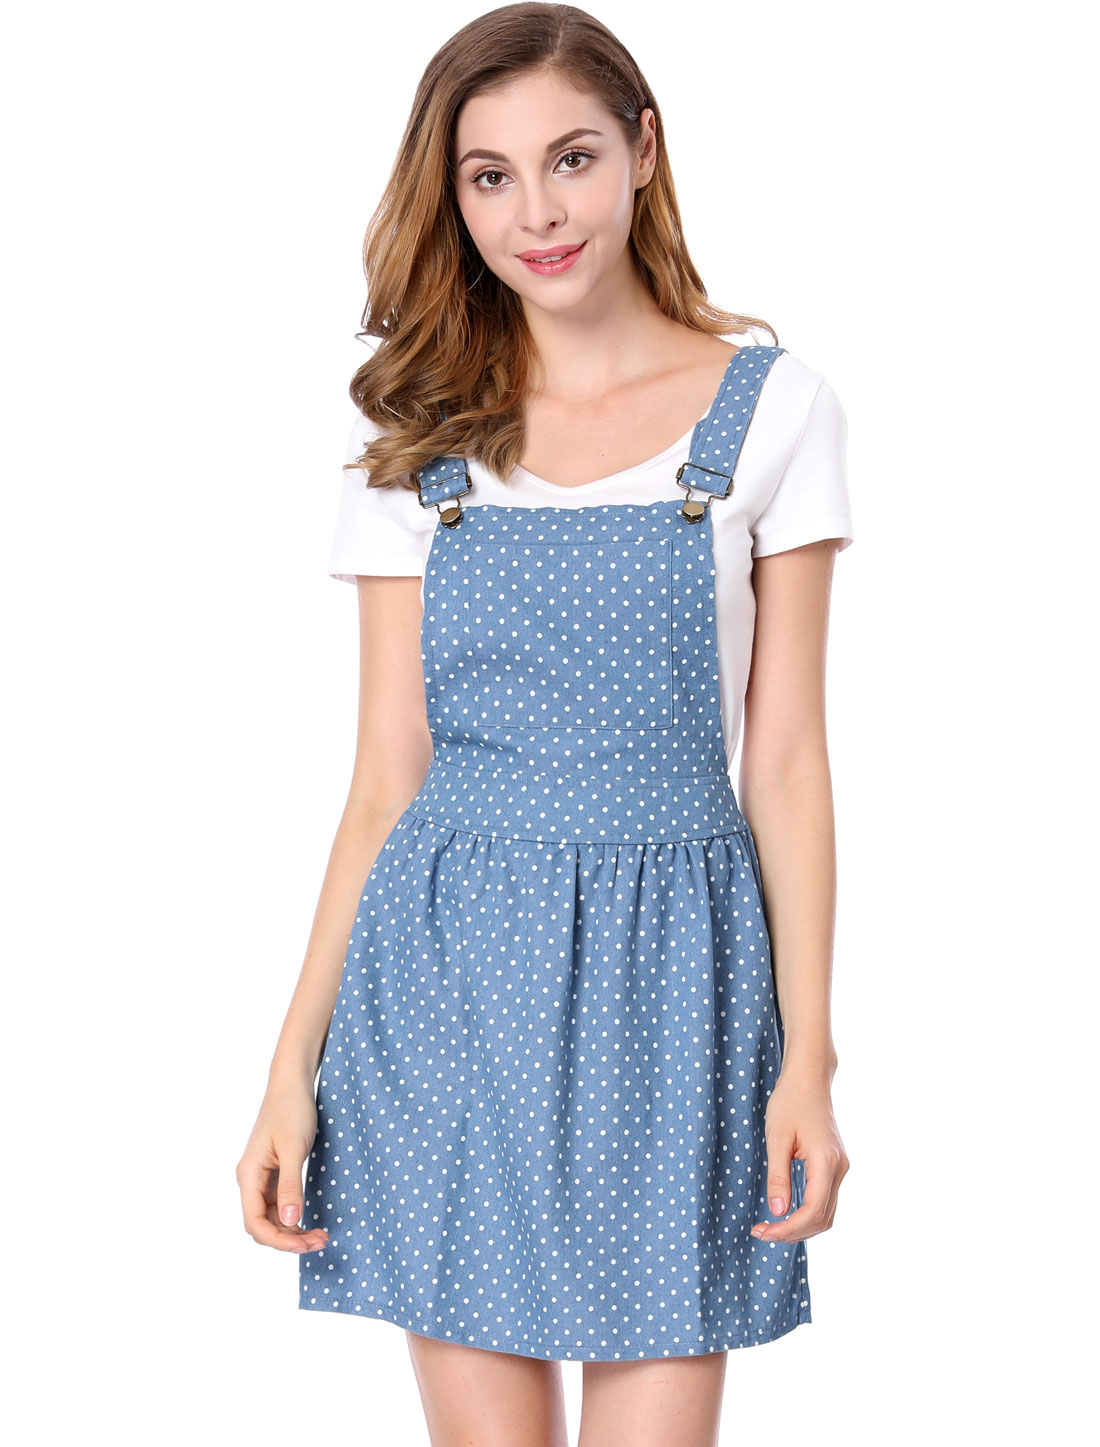 Women Fashion Dots One Pocket Front Denim Overall Dress Light Blue S